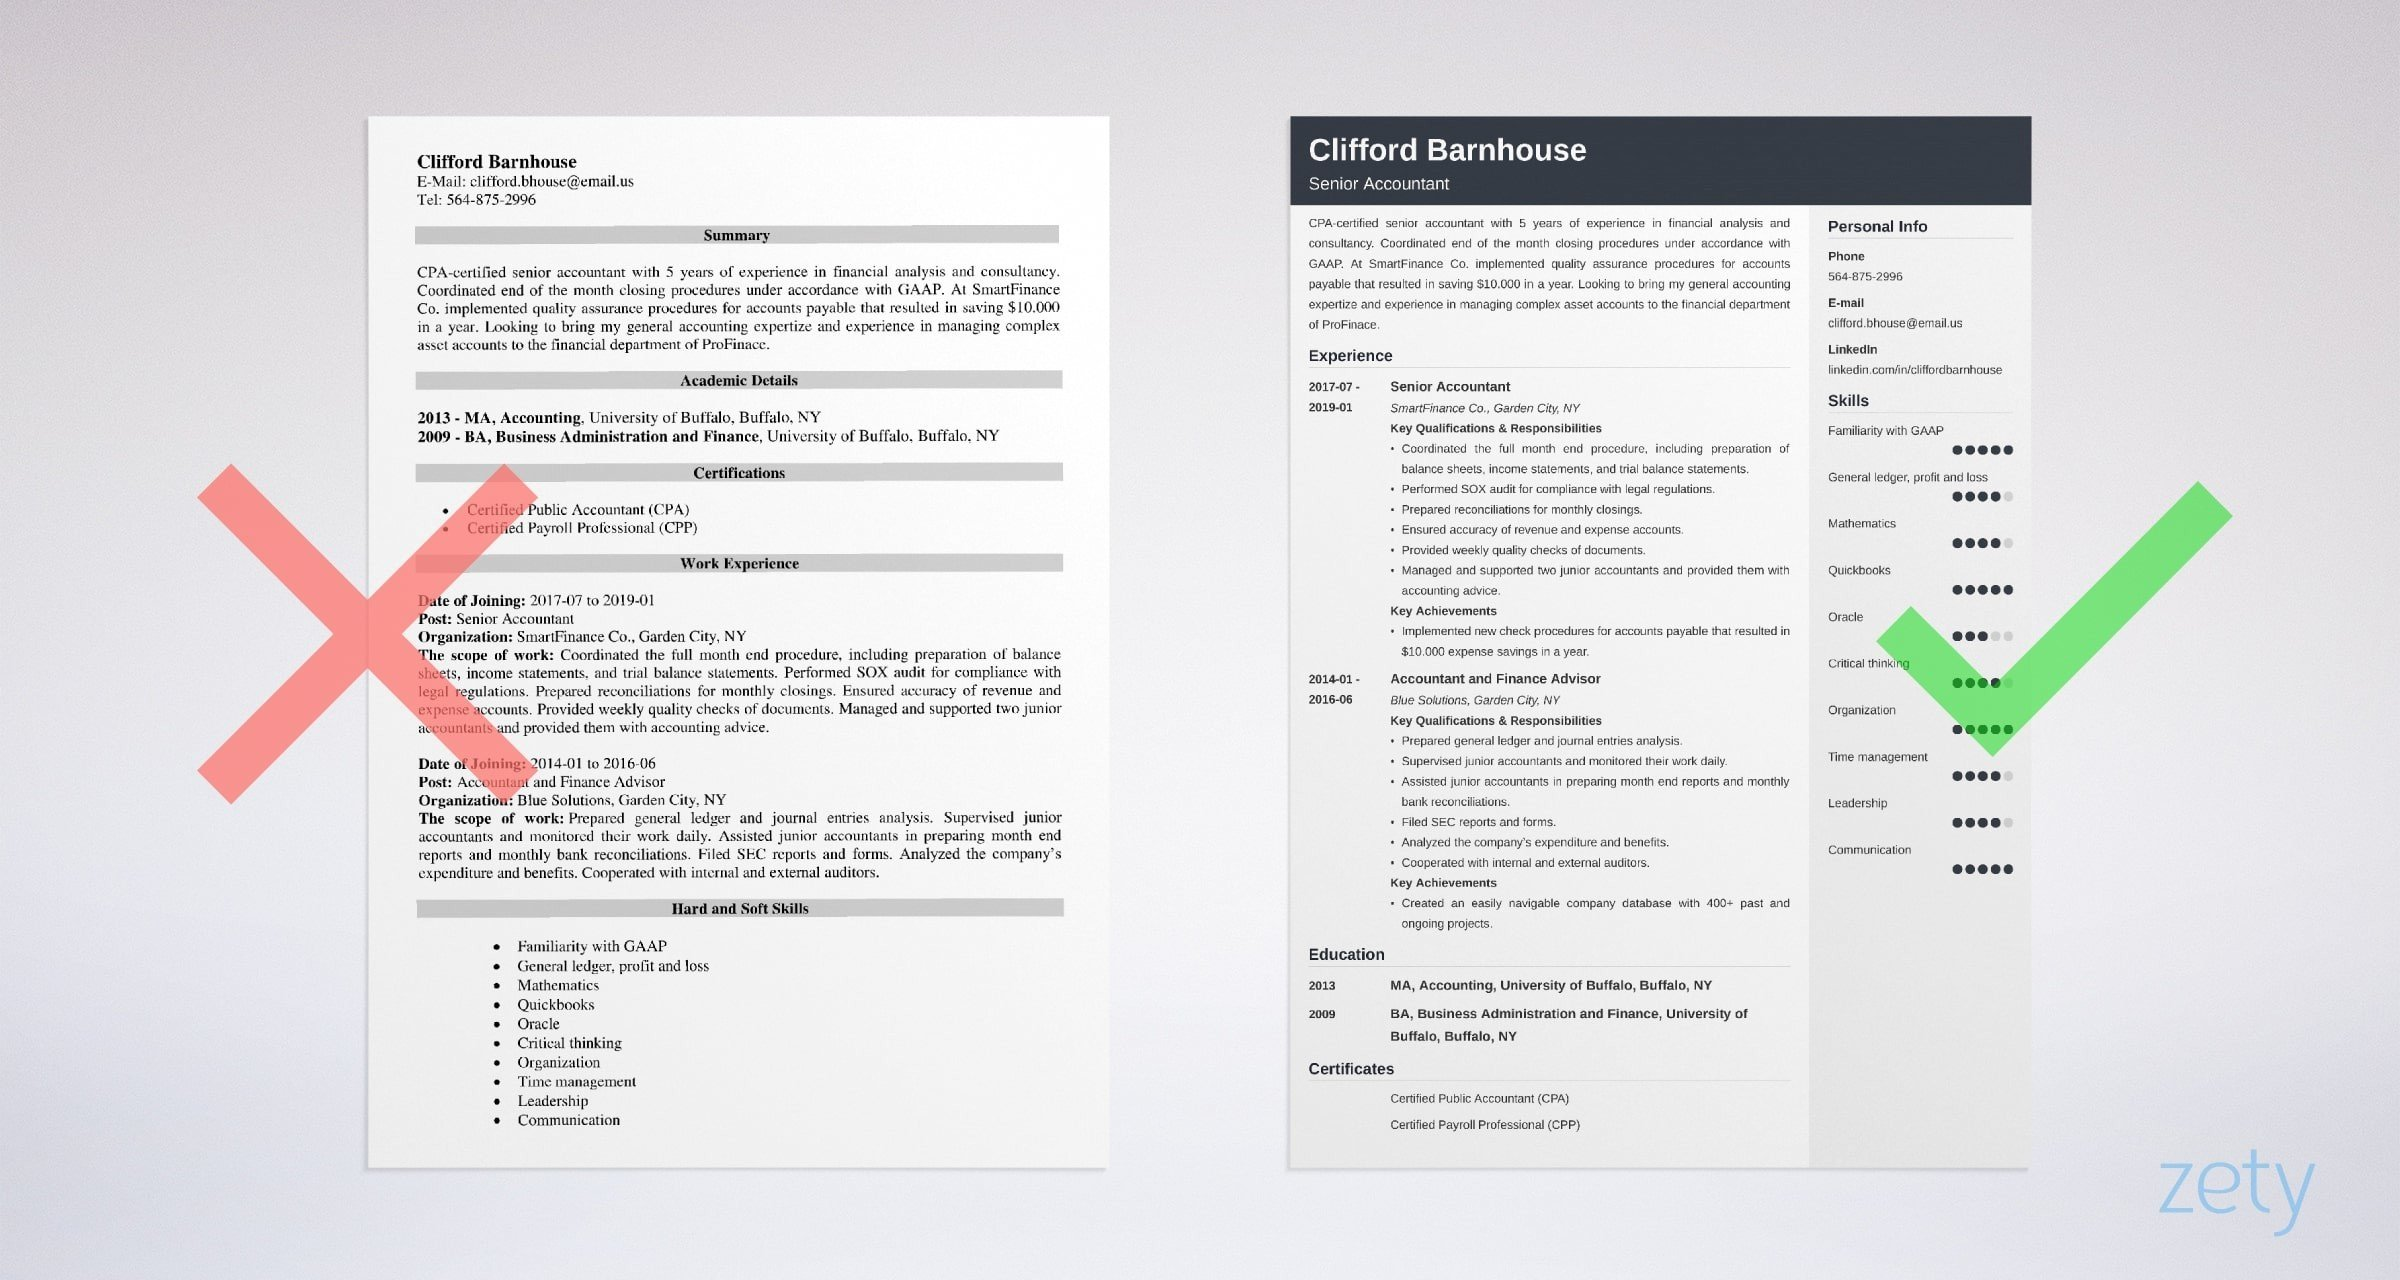 Senior Accountant Resume Sample Guide 20 Tips